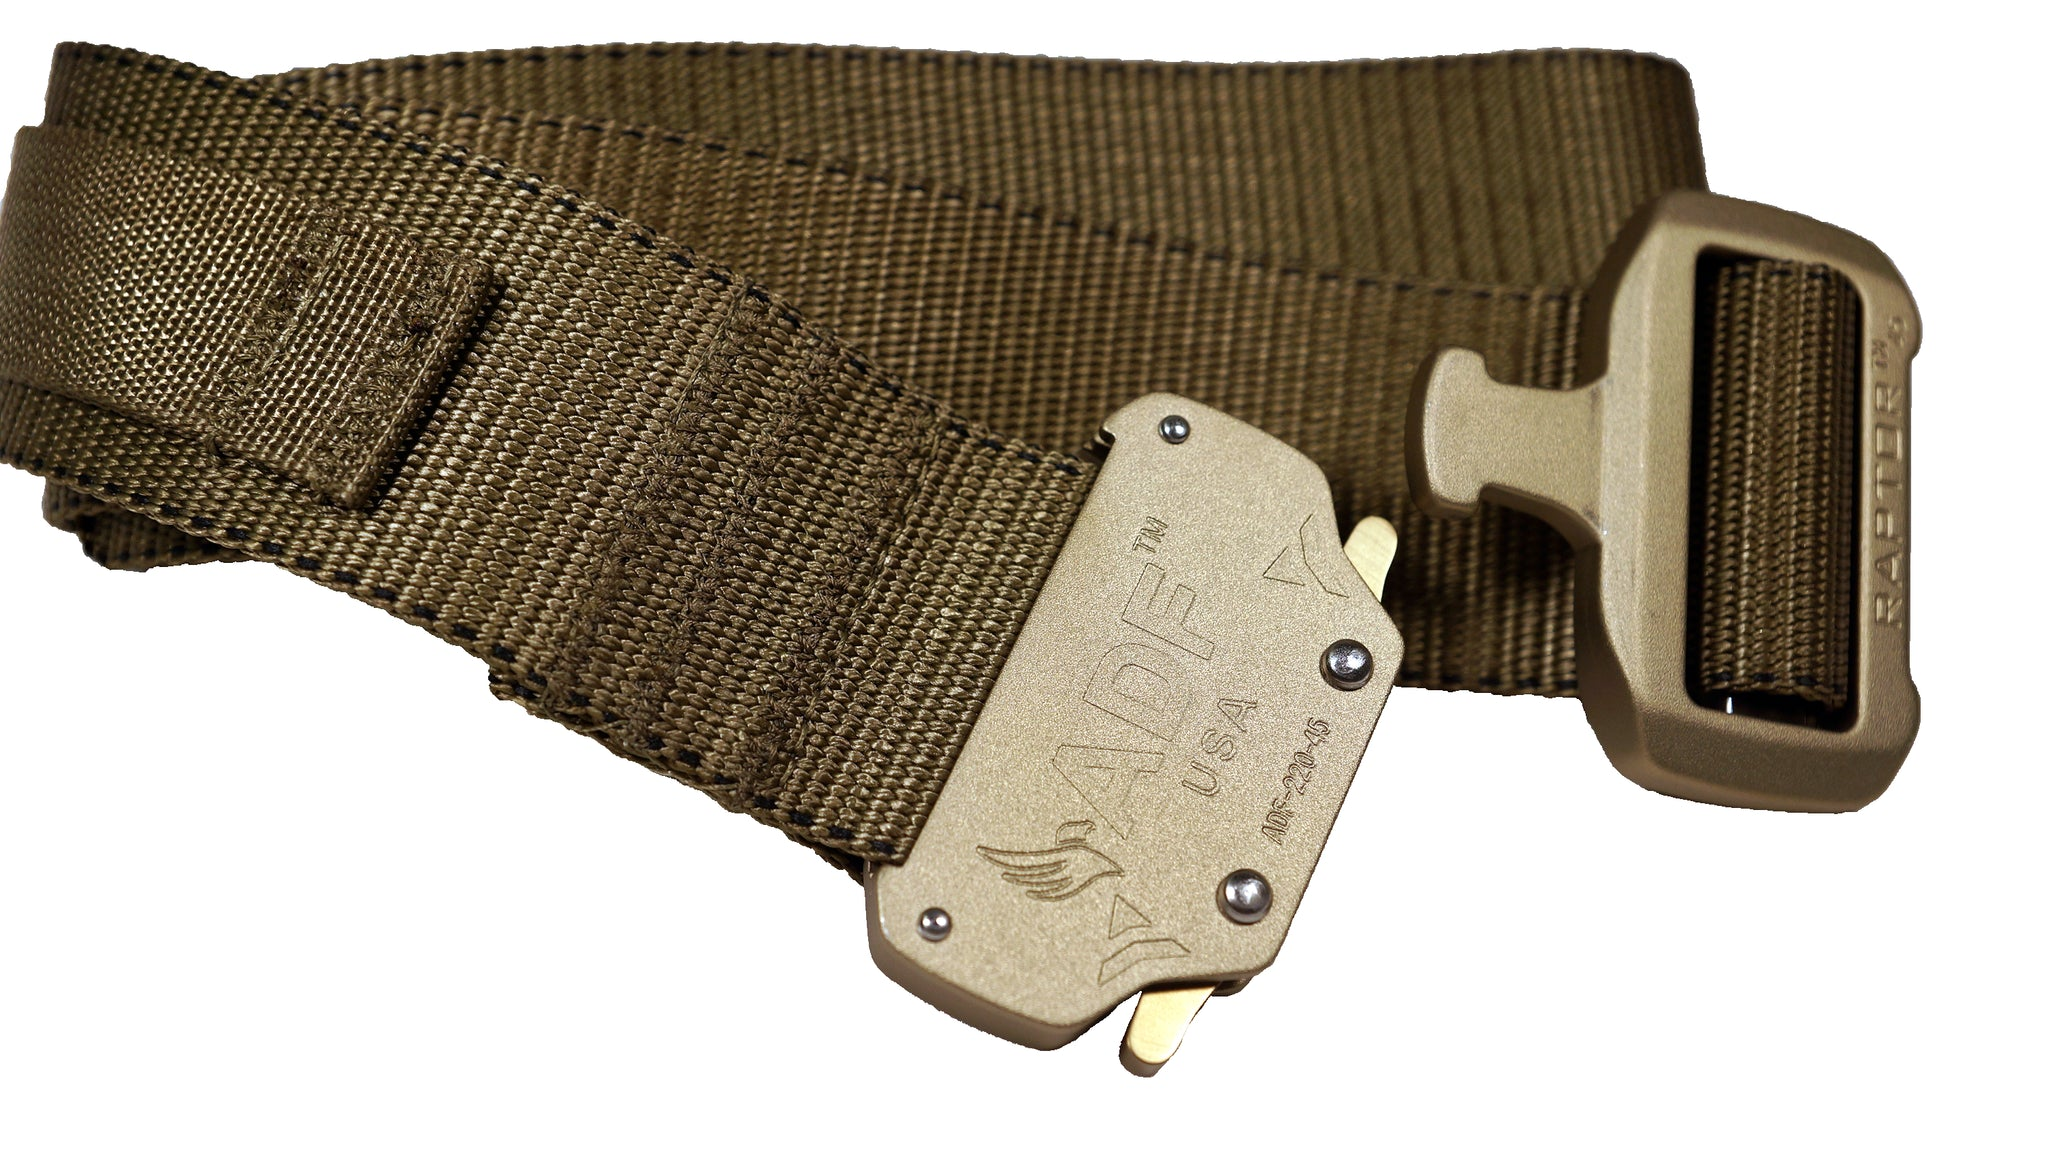 Tan/Coyote rigger's style belt with added nylon loop and metal hook to secure a ThermoLuminescent Dosimeter or TLD.